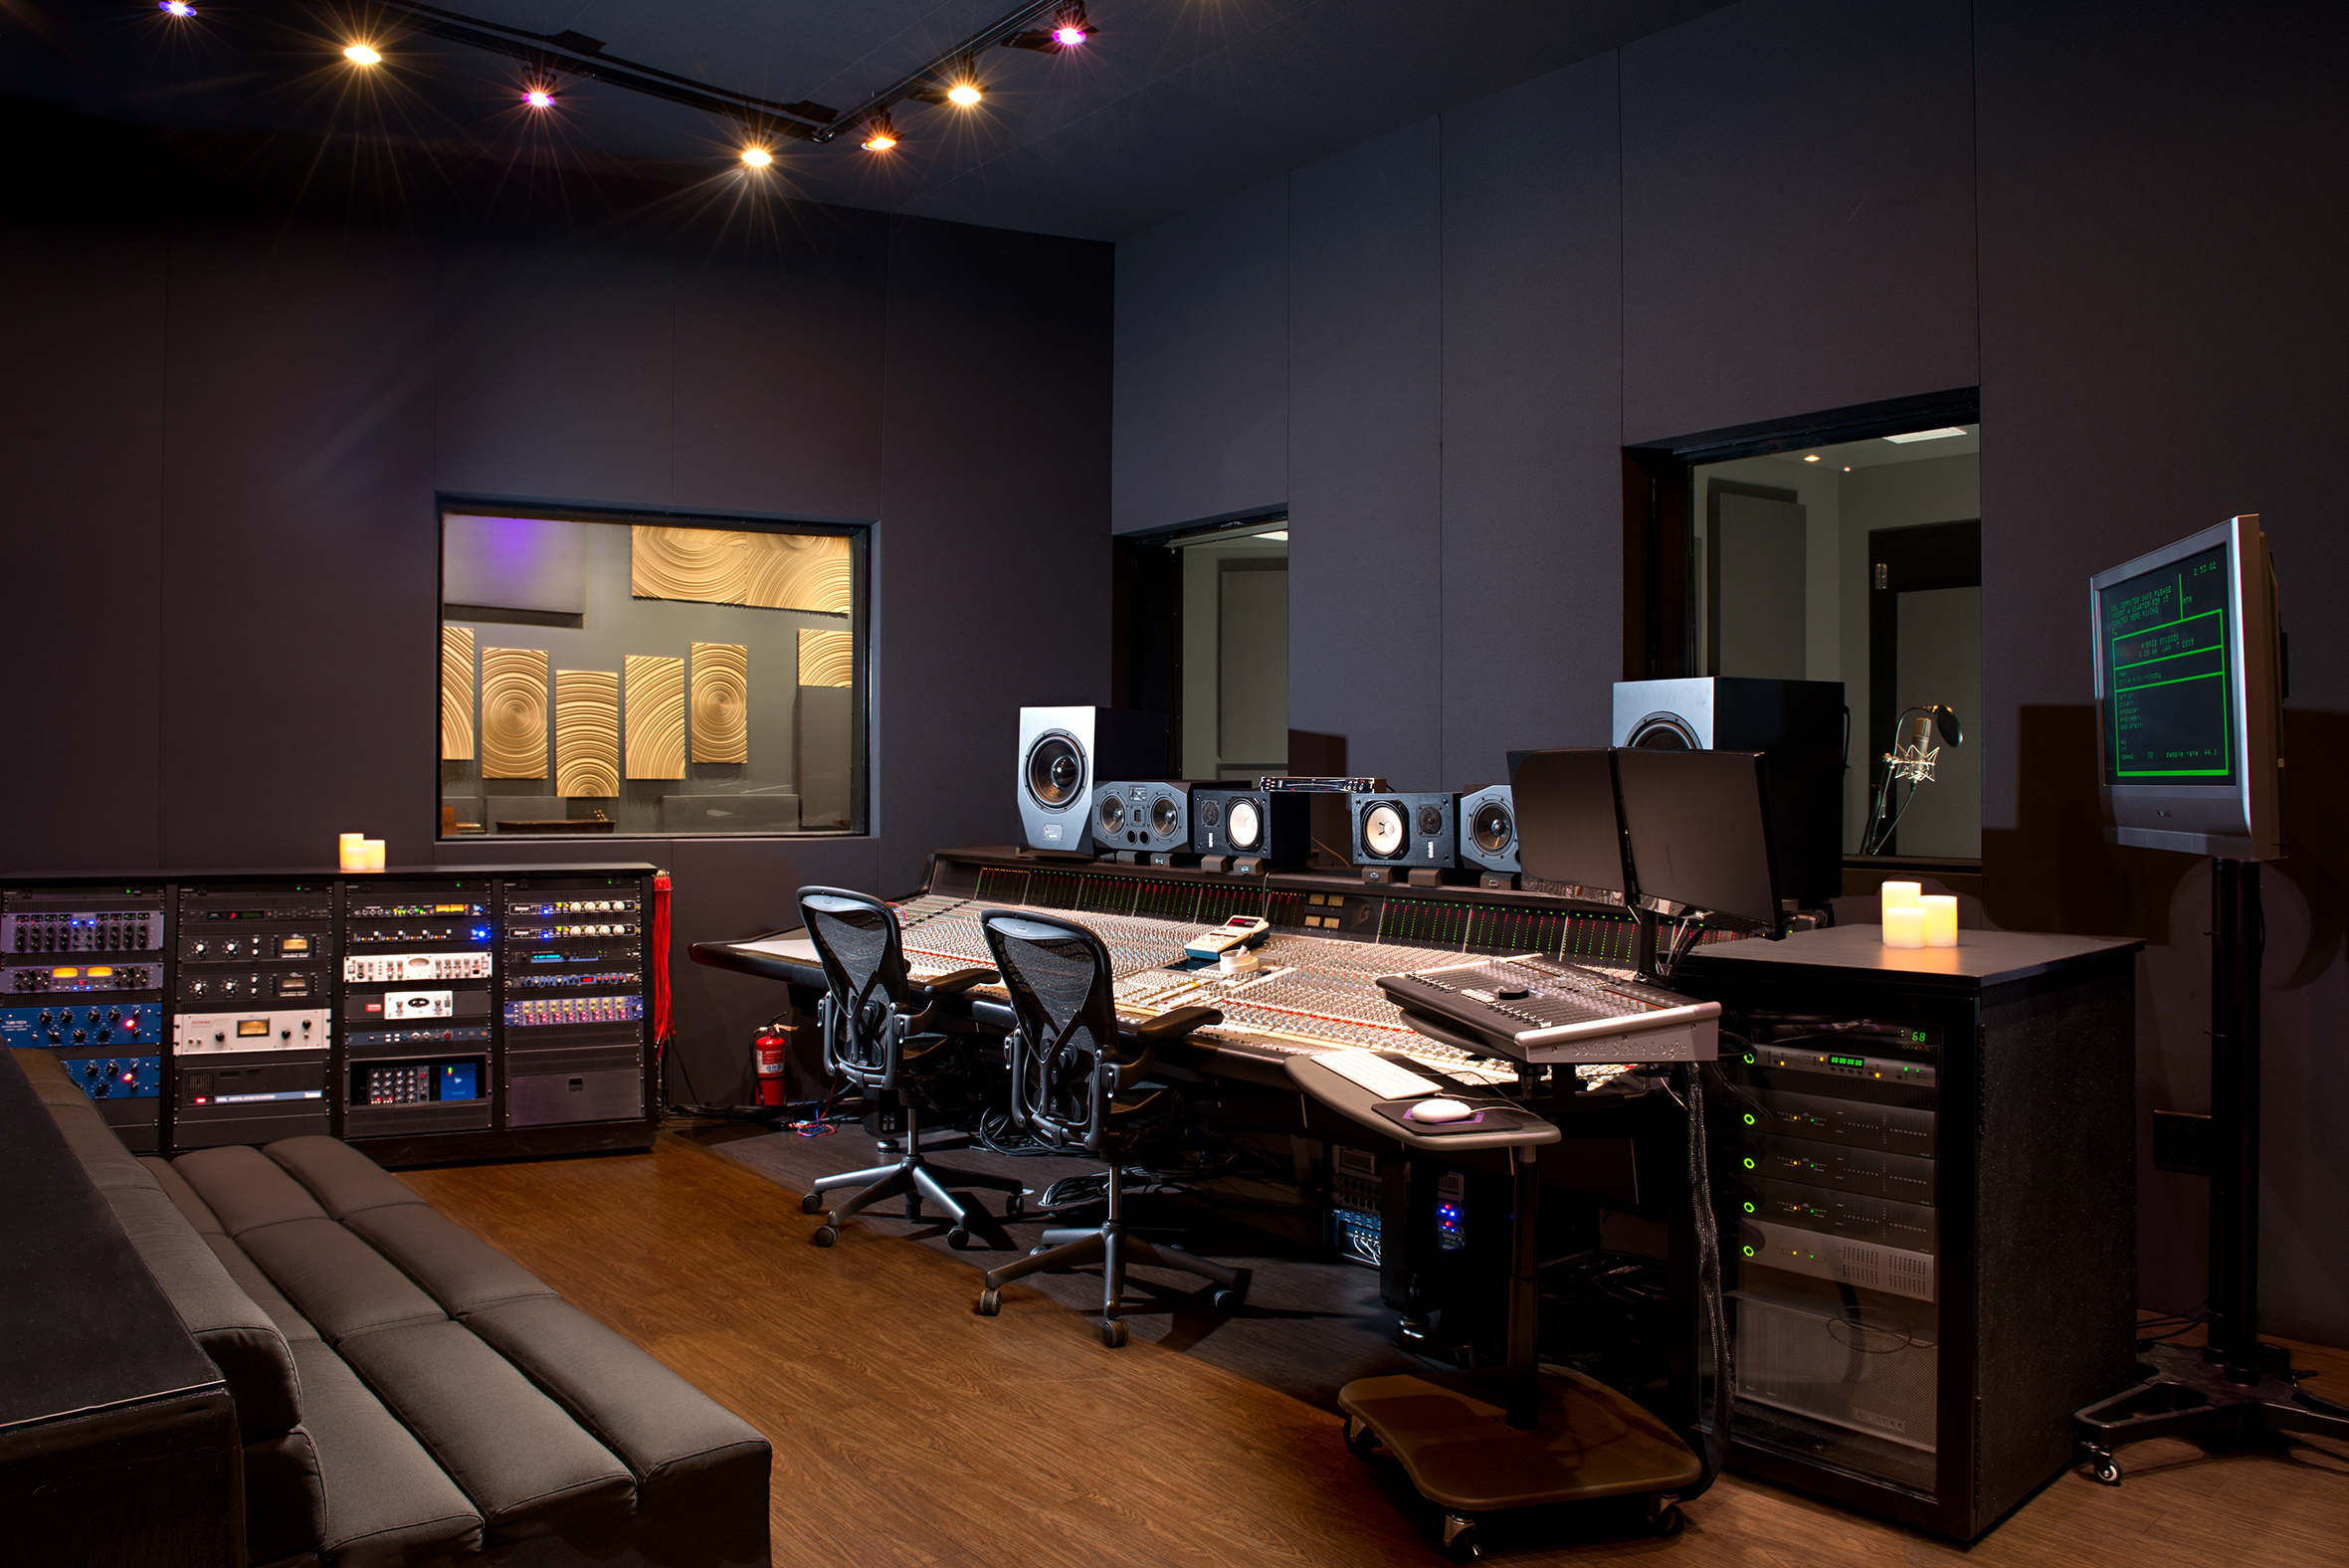 hybrid studios and orange county production house hold reverbnation competition newswire. Black Bedroom Furniture Sets. Home Design Ideas